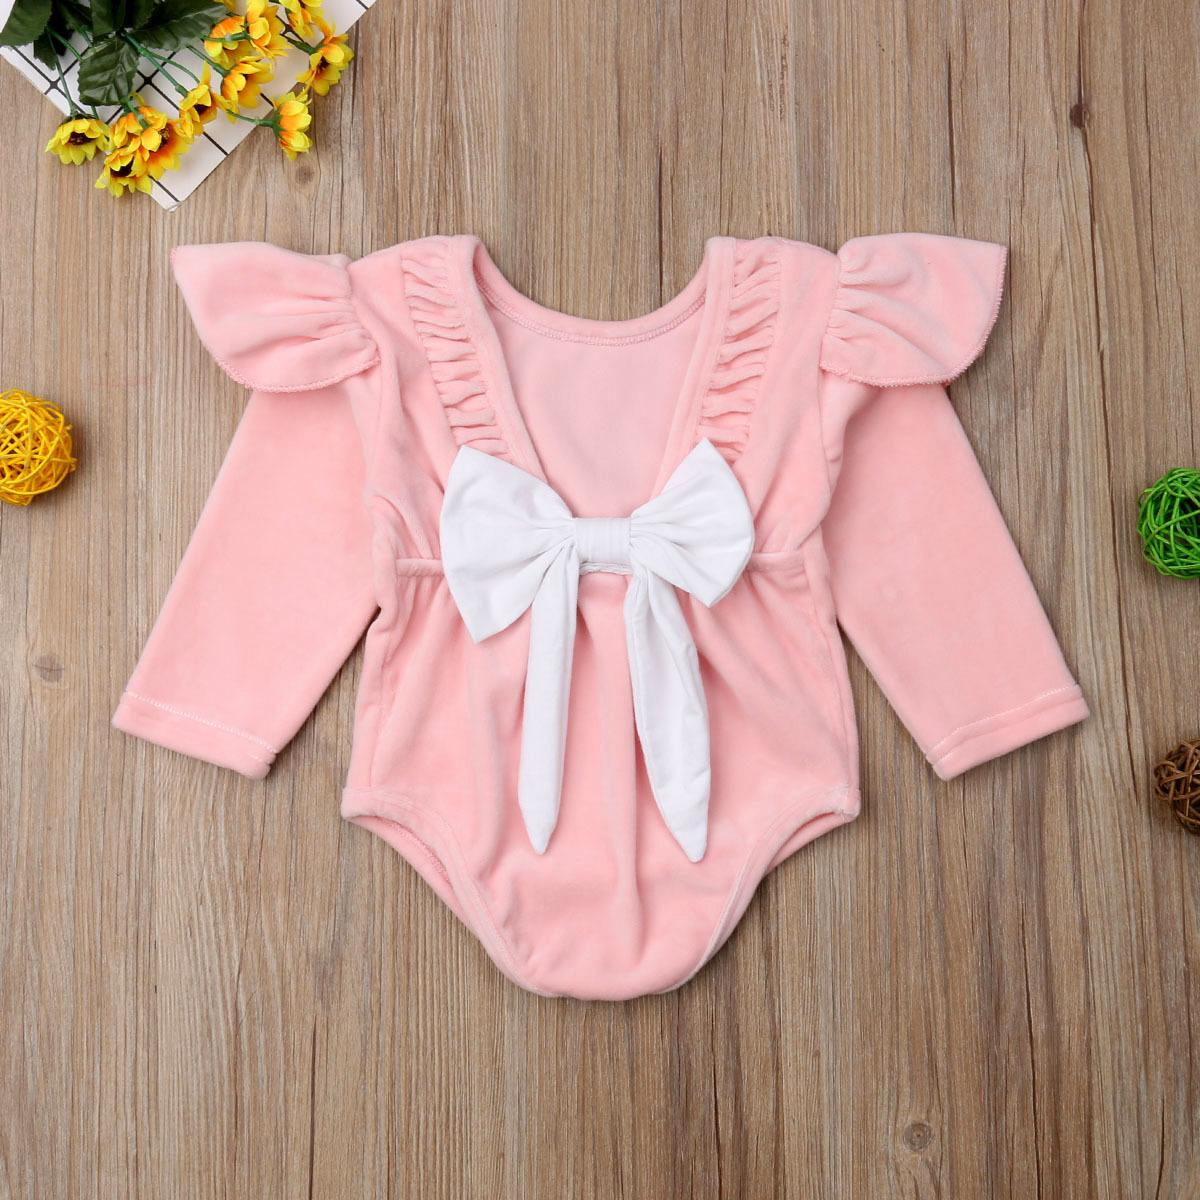 8f1a3ac4918 Newborn Infant Baby Girl Clothes Princess Romper Ruffle Long Sleeve Velvet  Solid Jumpsuit Backless Large Bow Tie Sunsuit Outfit Online with   16.4 Piece on ...